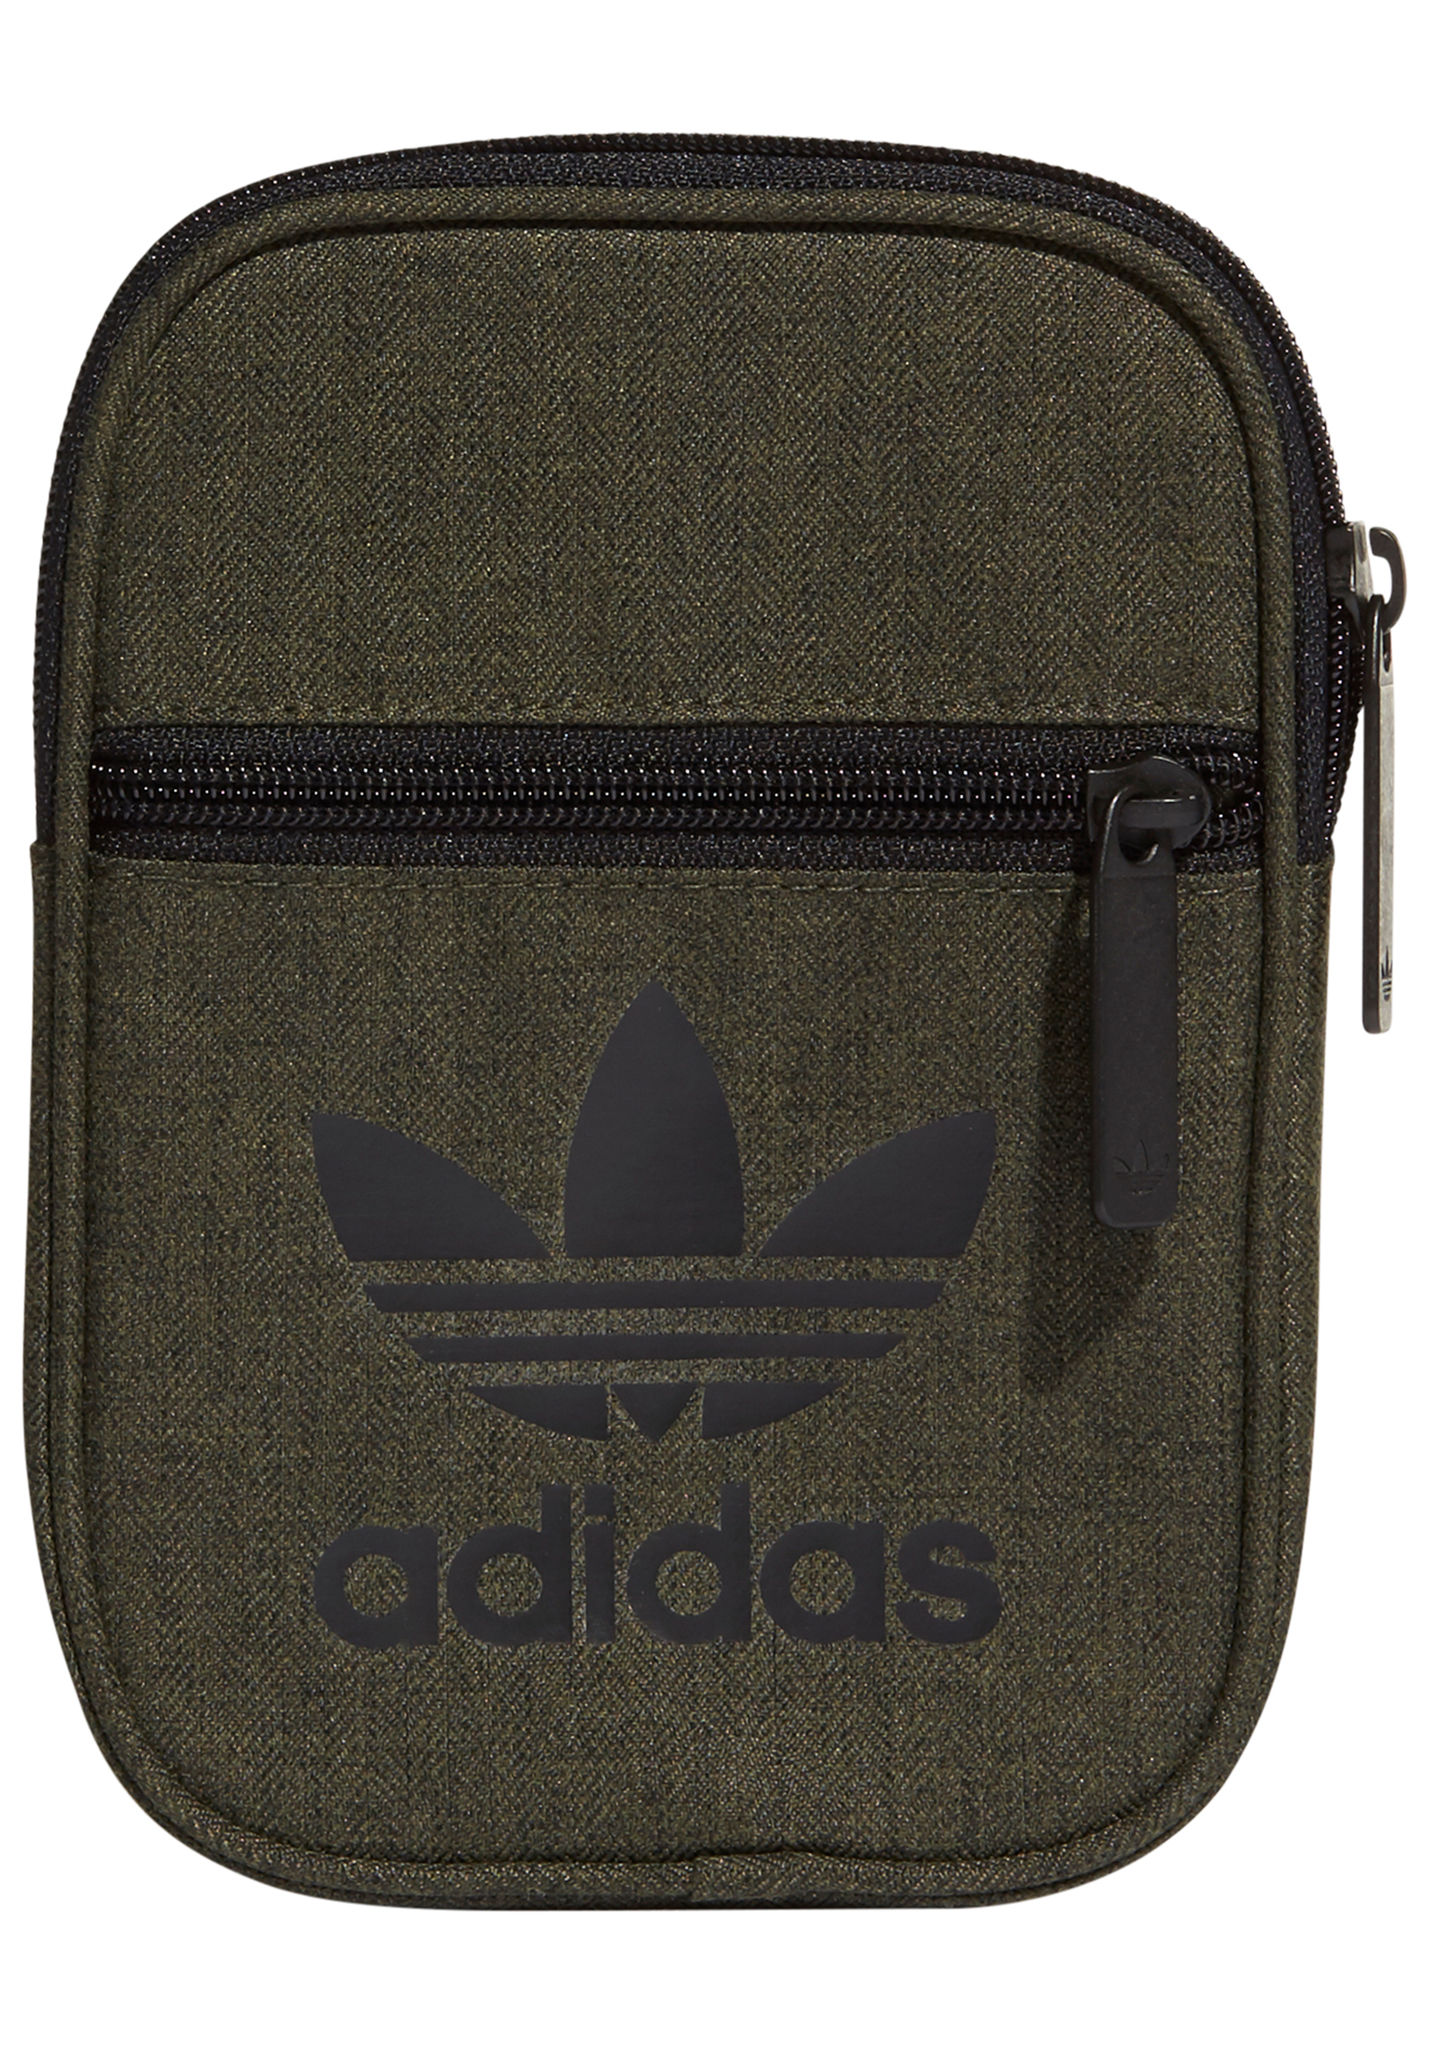 18fee35a54e9 ADIDAS ORIGINALS Trefoil Festival Casual - Messenger Bag for Men - Green -  Planet Sports